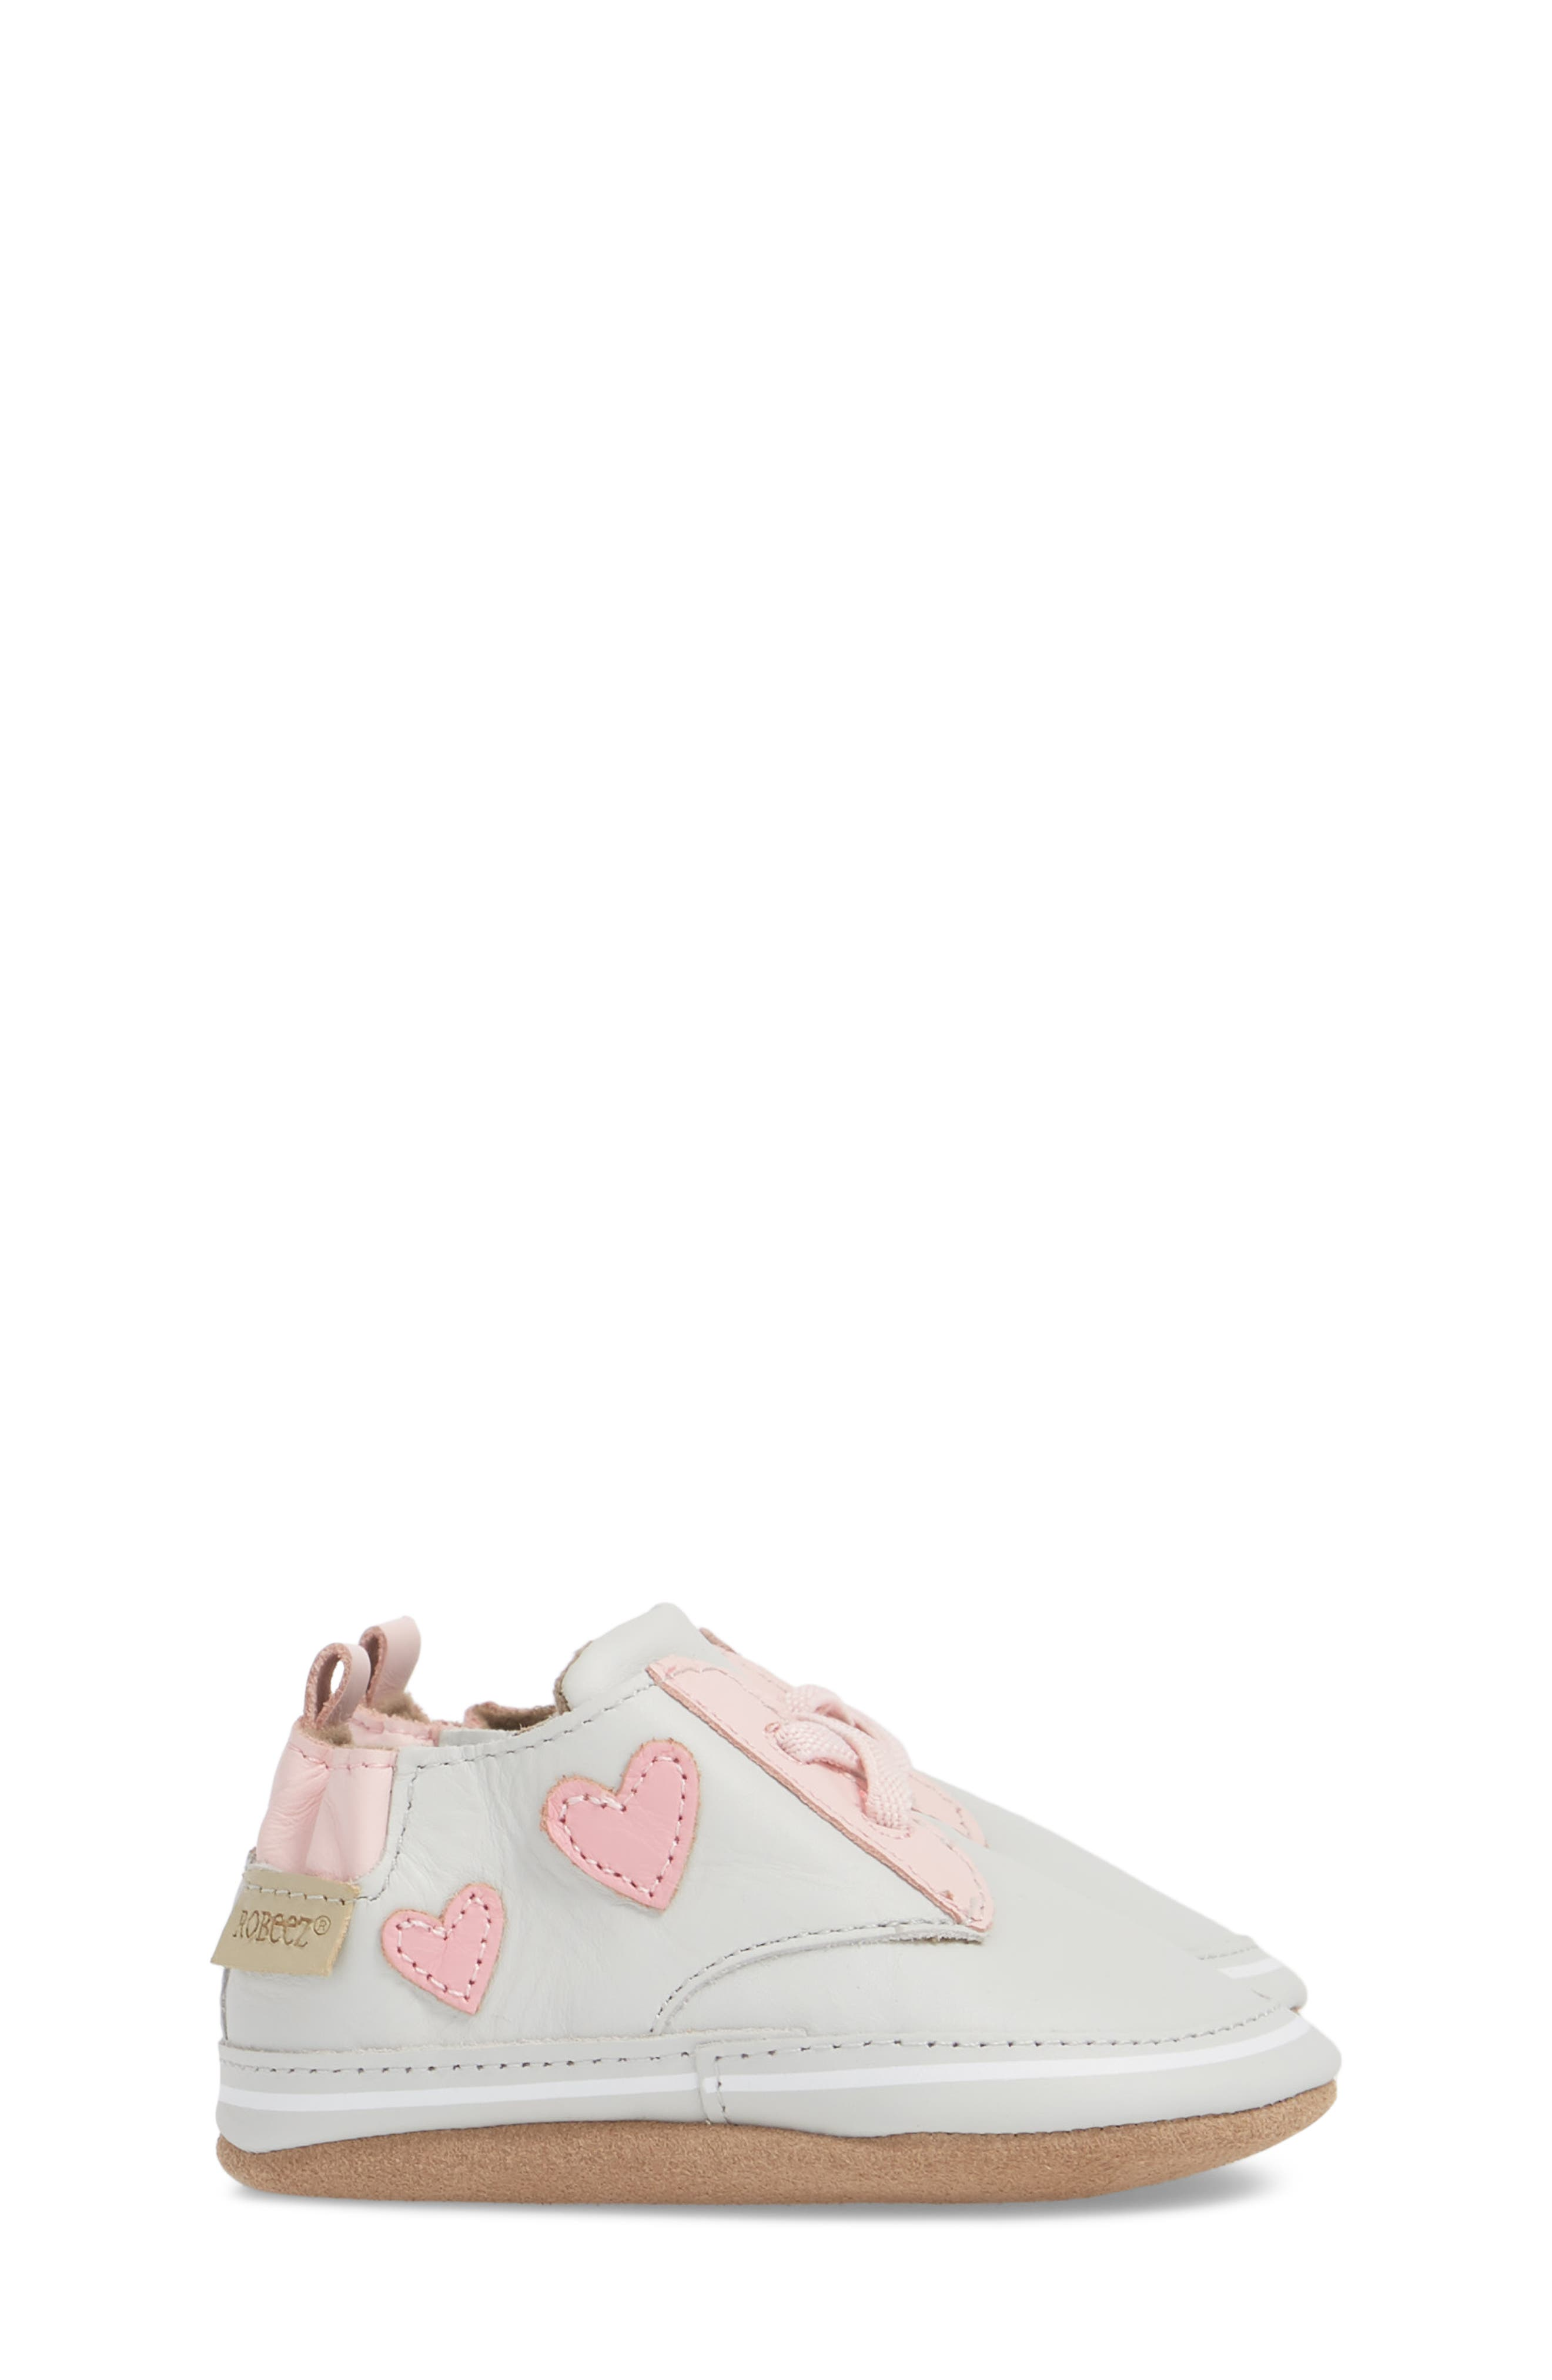 Heartbreaker Slip-On Crib Sneaker,                             Alternate thumbnail 3, color,                             055